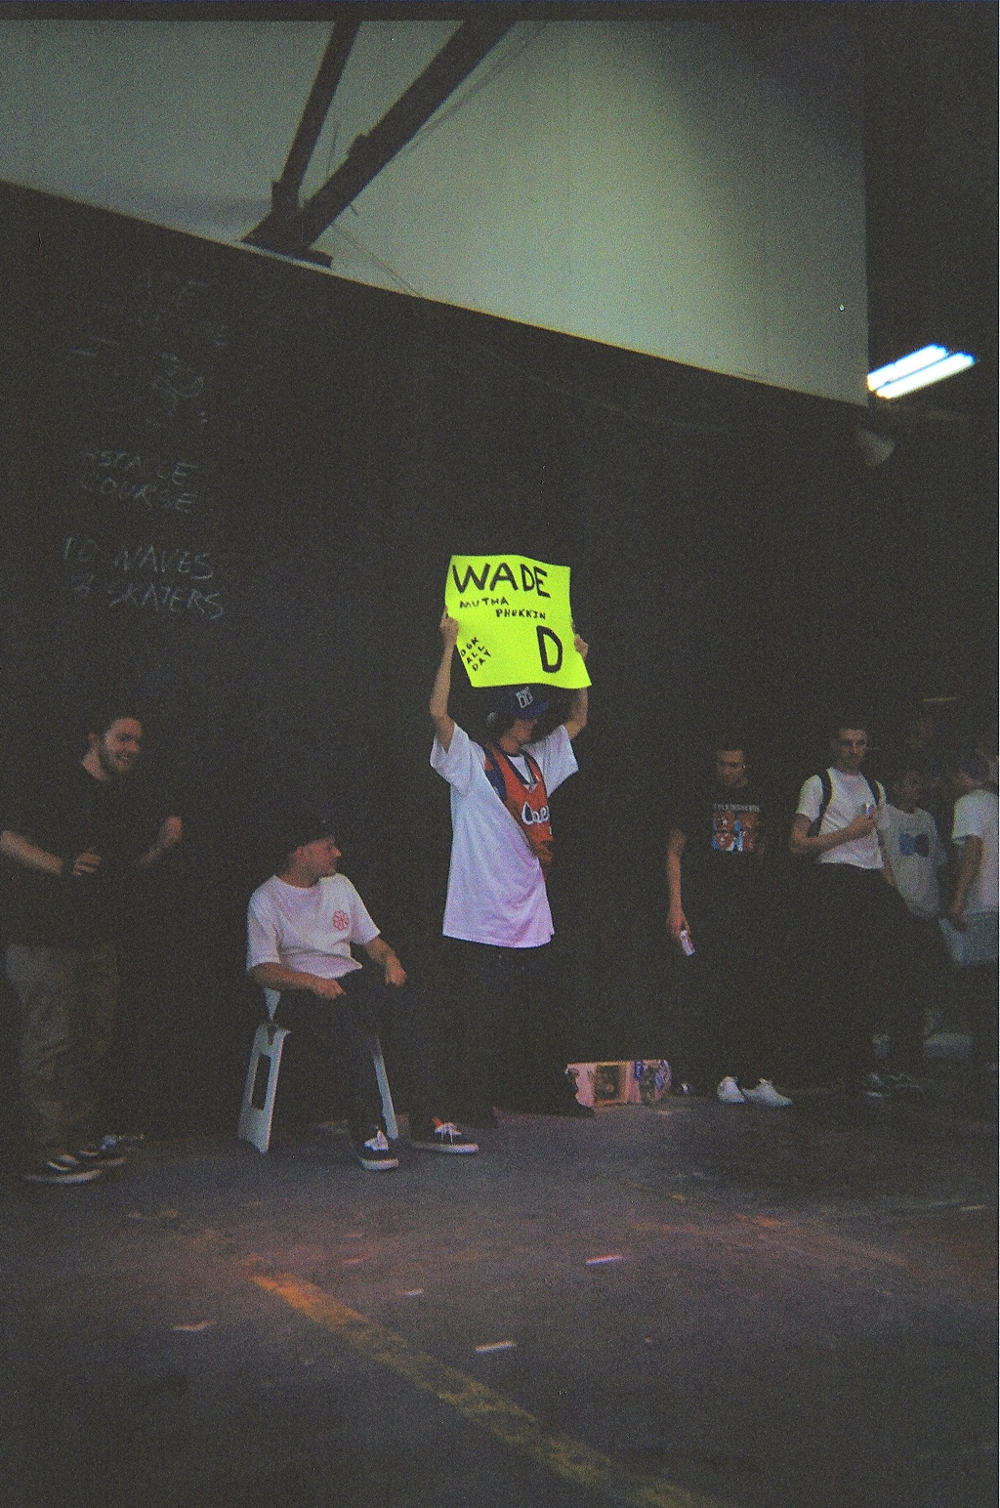 Wade DesArmo's biggest fan came dressed as Wade to support him in the World Championship of Flatground Skateboarding